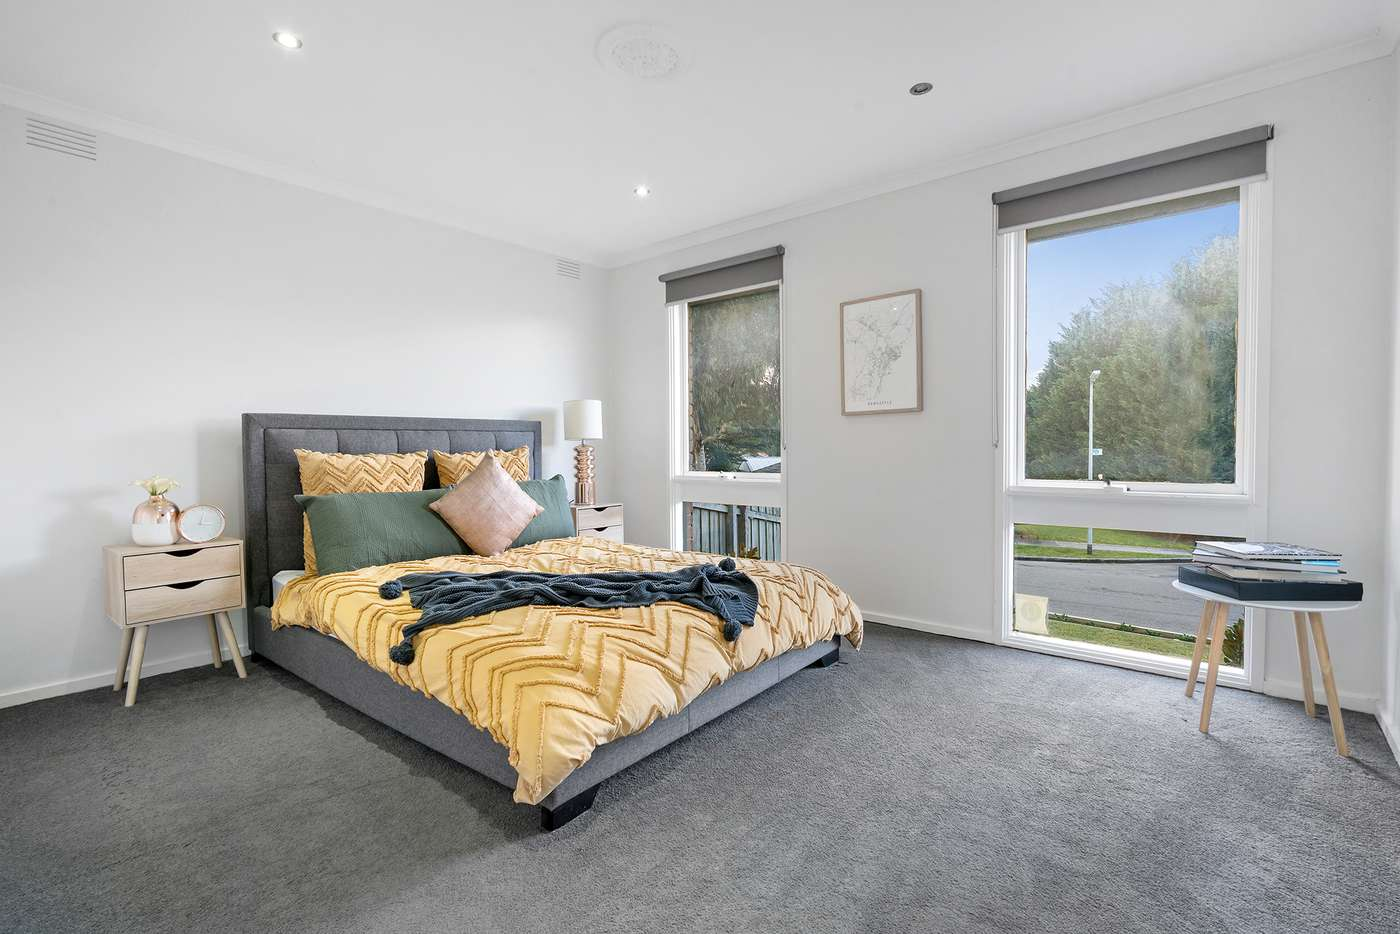 Sixth view of Homely house listing, 73 Dunsterville Crescent, Frankston VIC 3199